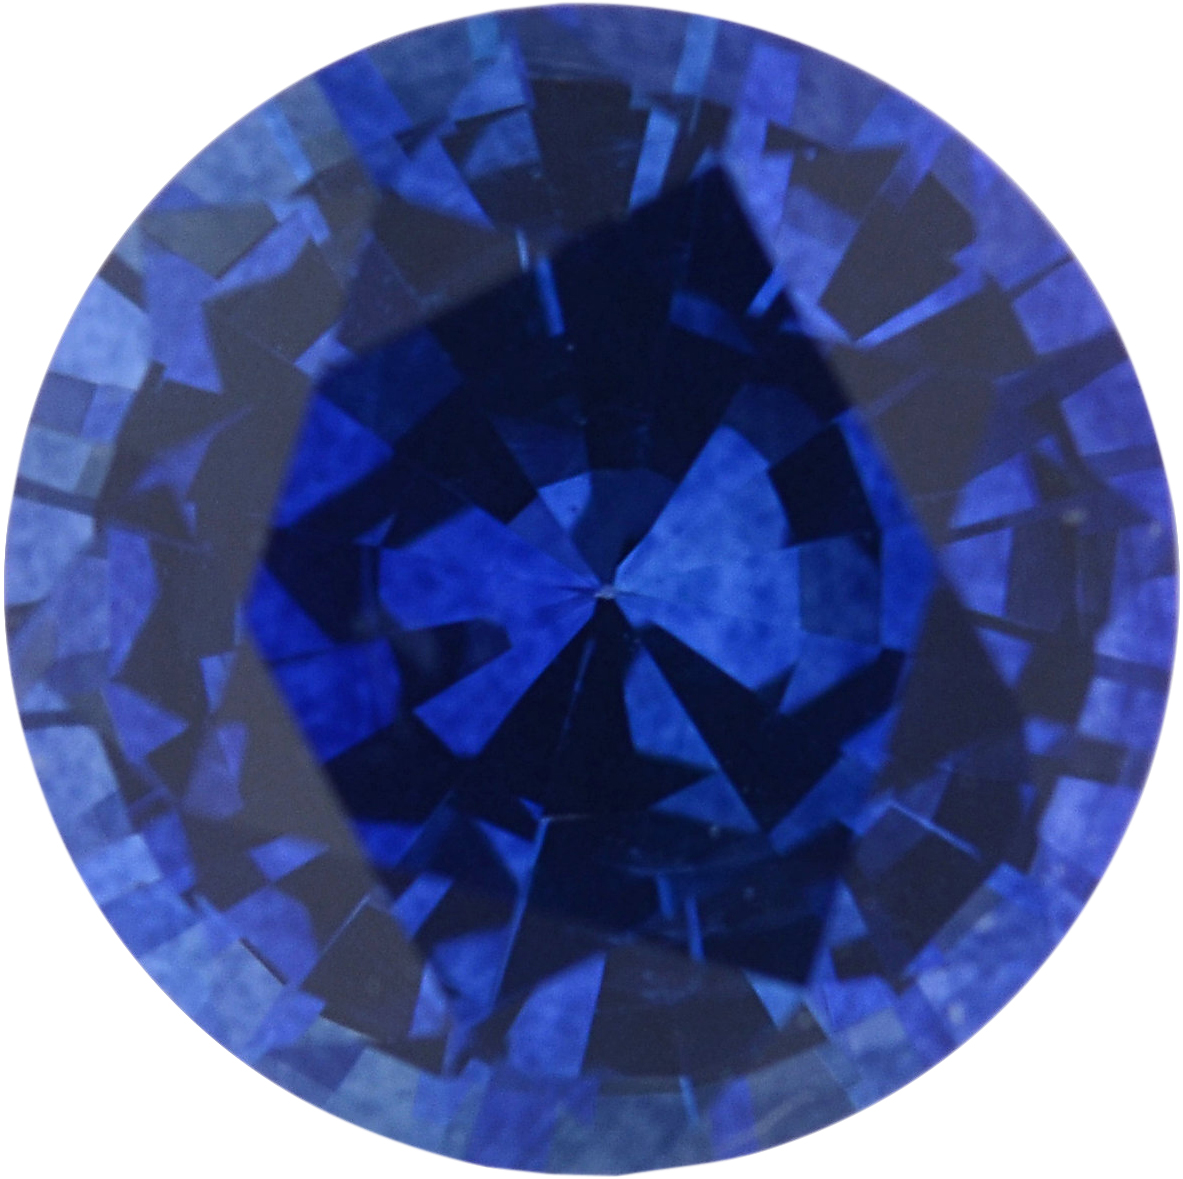 0.87 carats Blue Loose Sapphire Gemstone in Round Cut, 5.79 mm